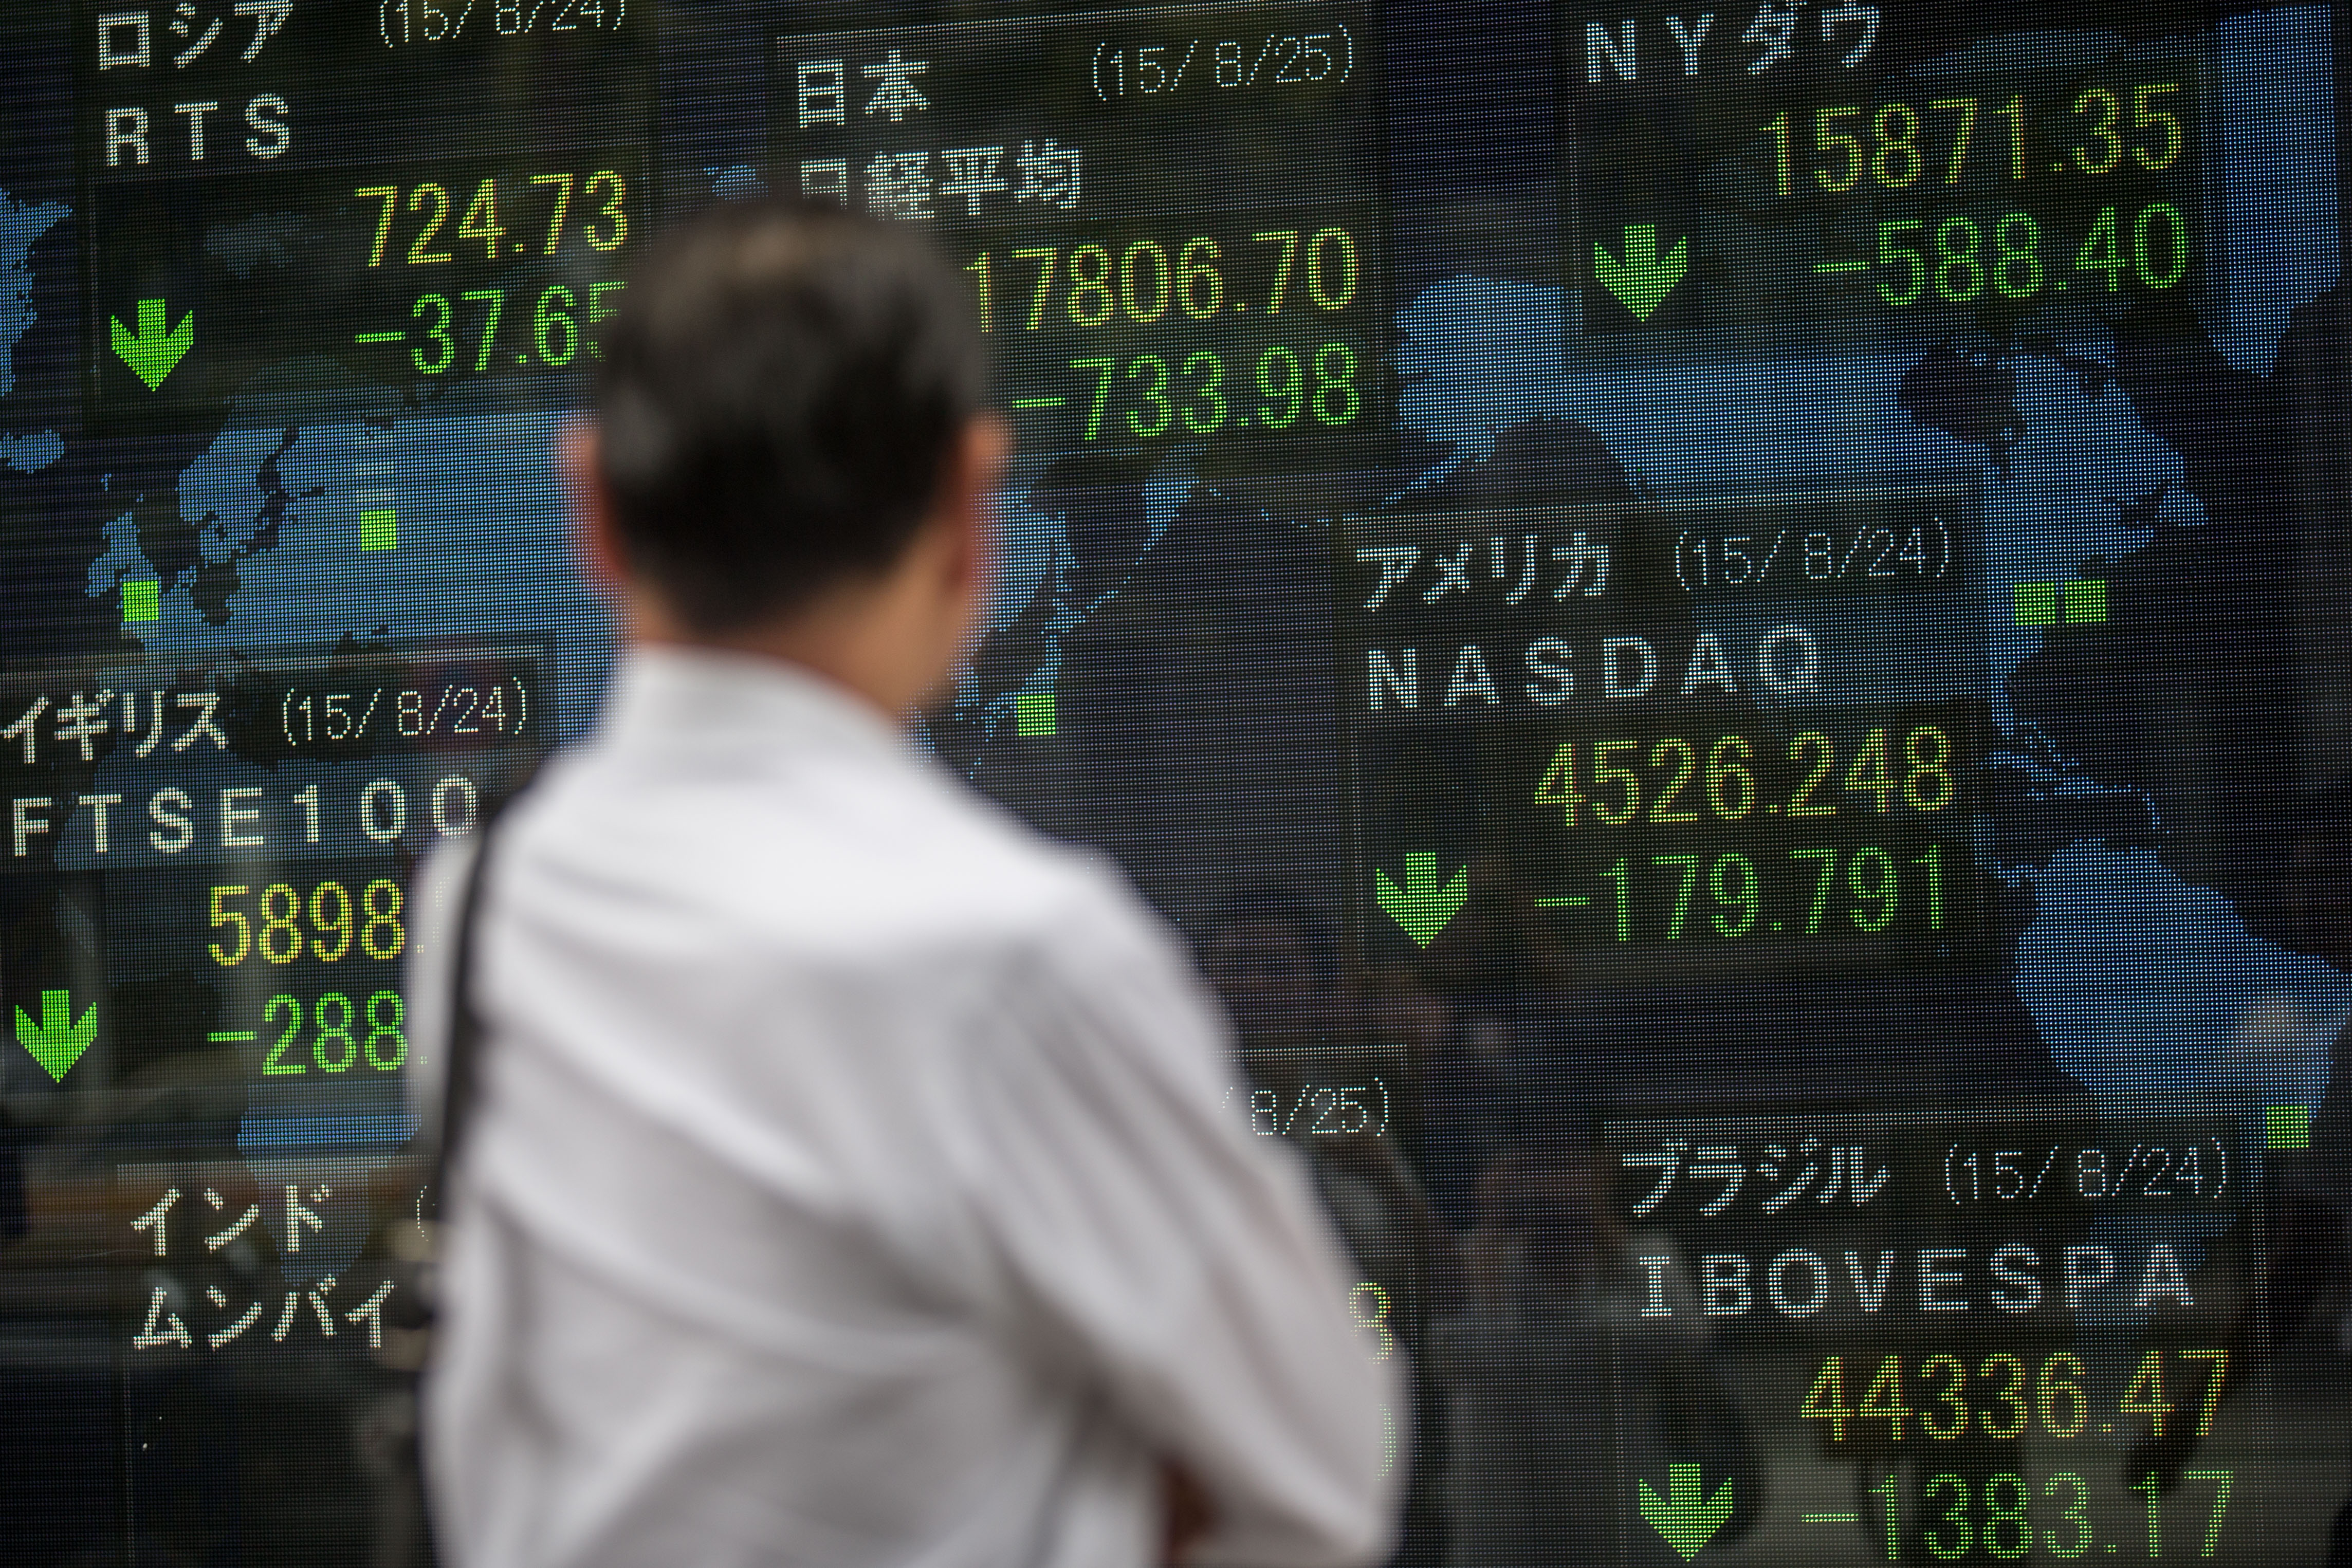 Asian Markets Continue To Fall on Fears Of China Slowdown